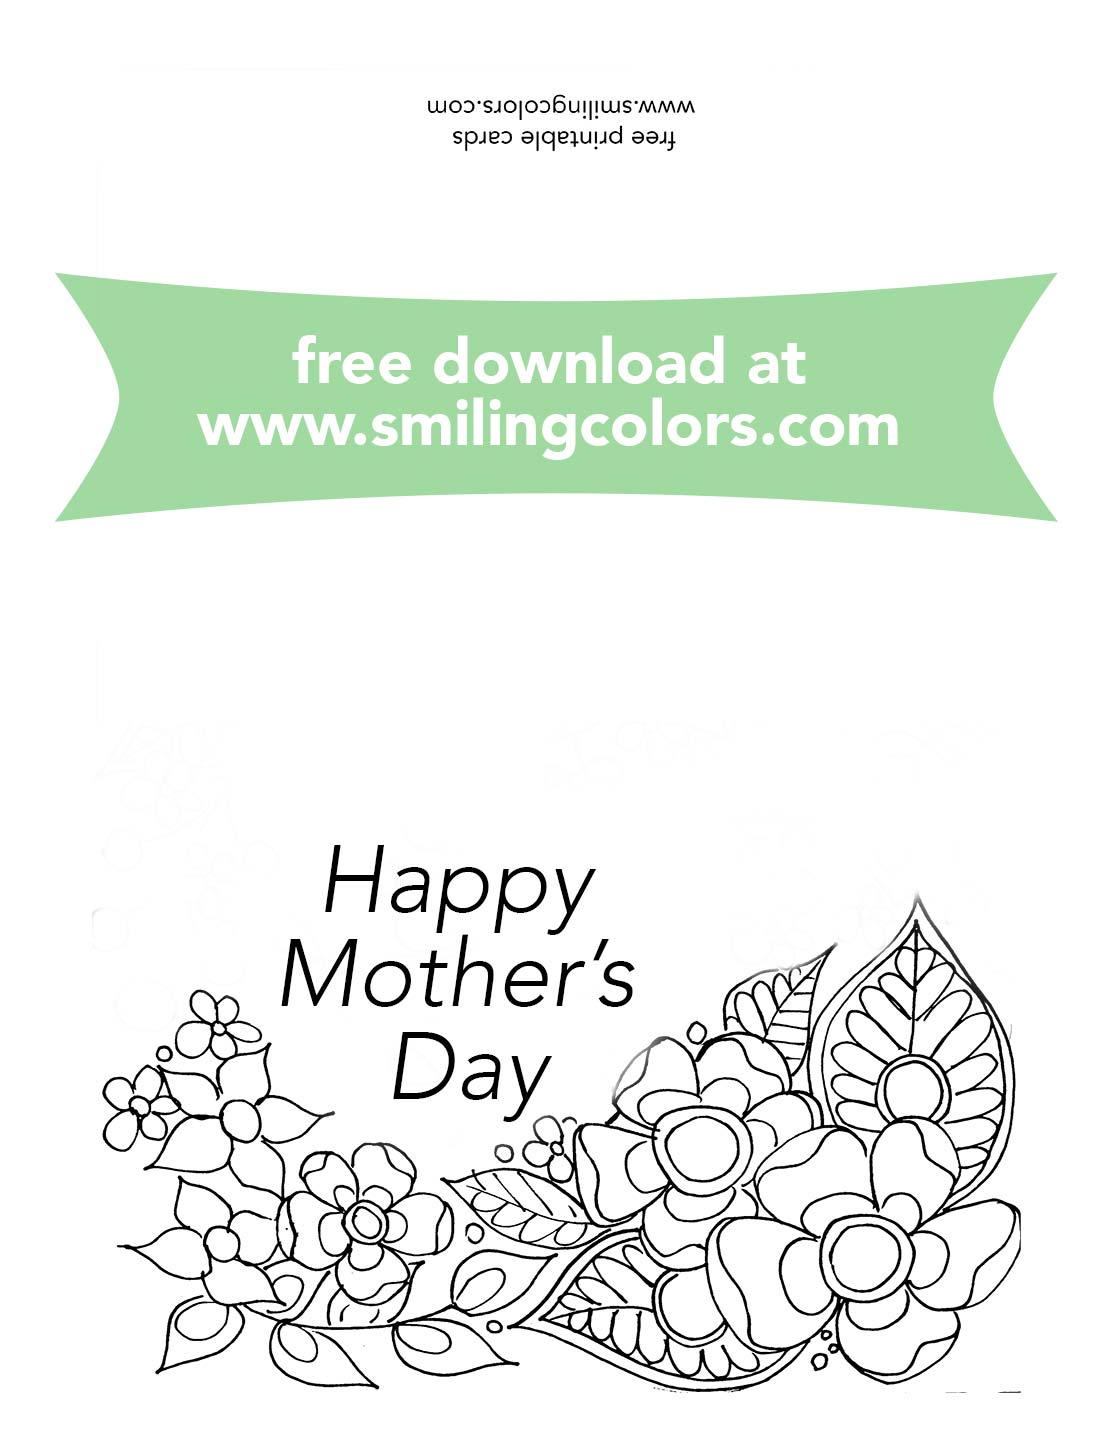 graphic about Printable Coloring Mothers Day Cards known as Moms working day coloring playing cards, Free of charge toward print and shade at present